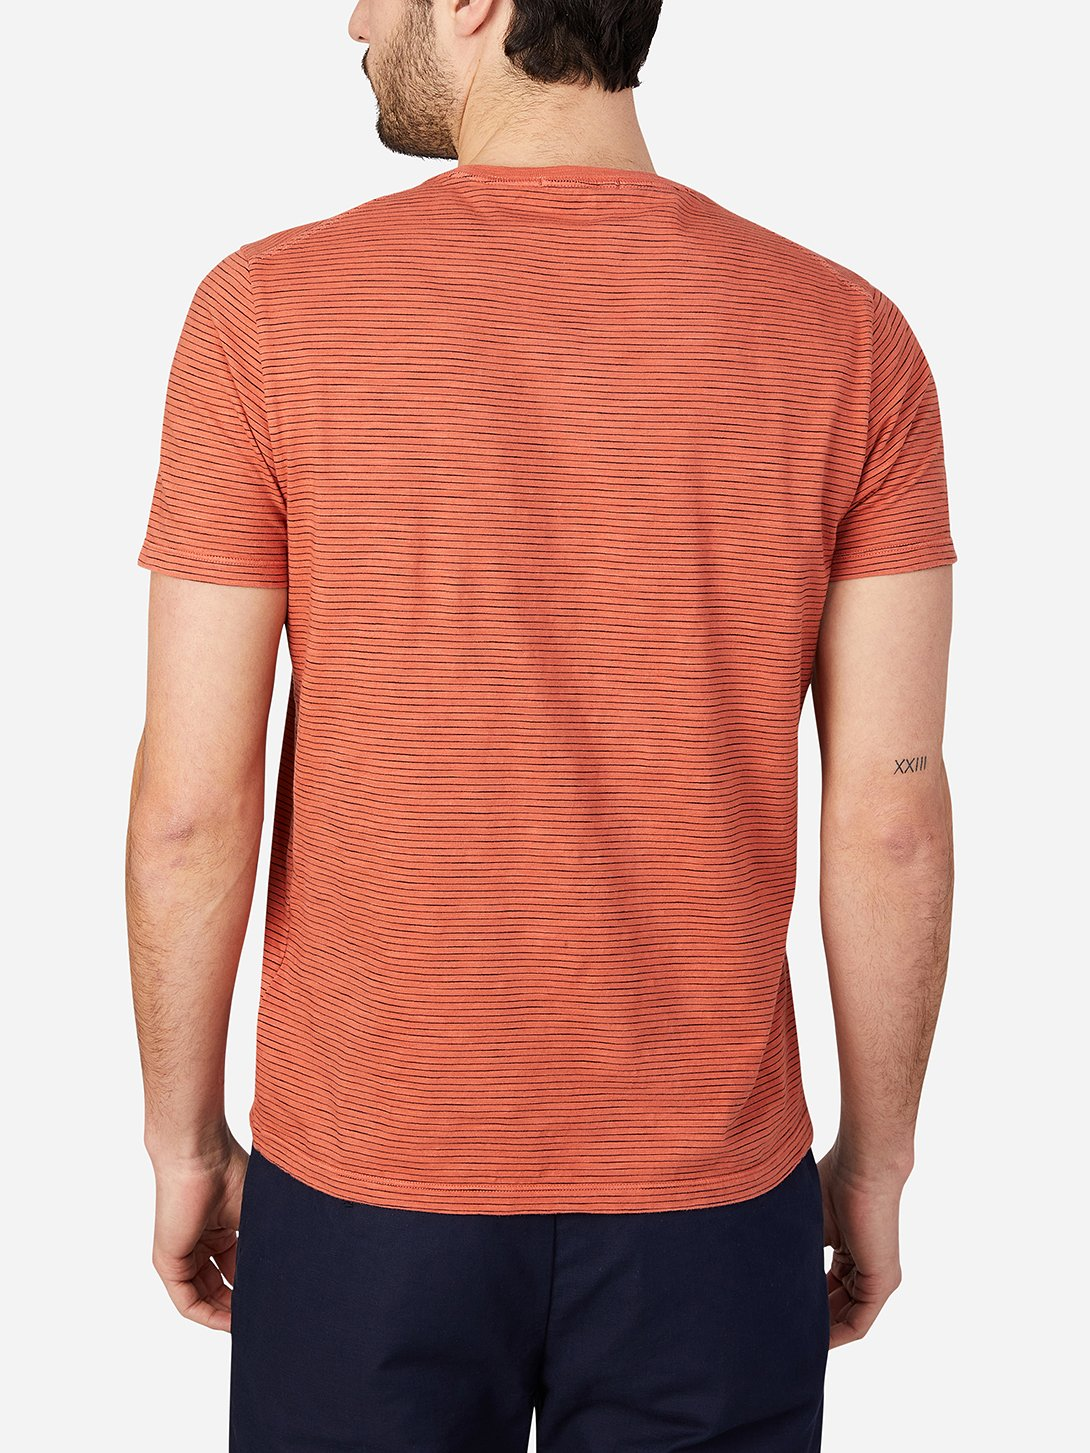 ORANGE STRIPE t shirts for men bowery stripe pocket tee ons clothing